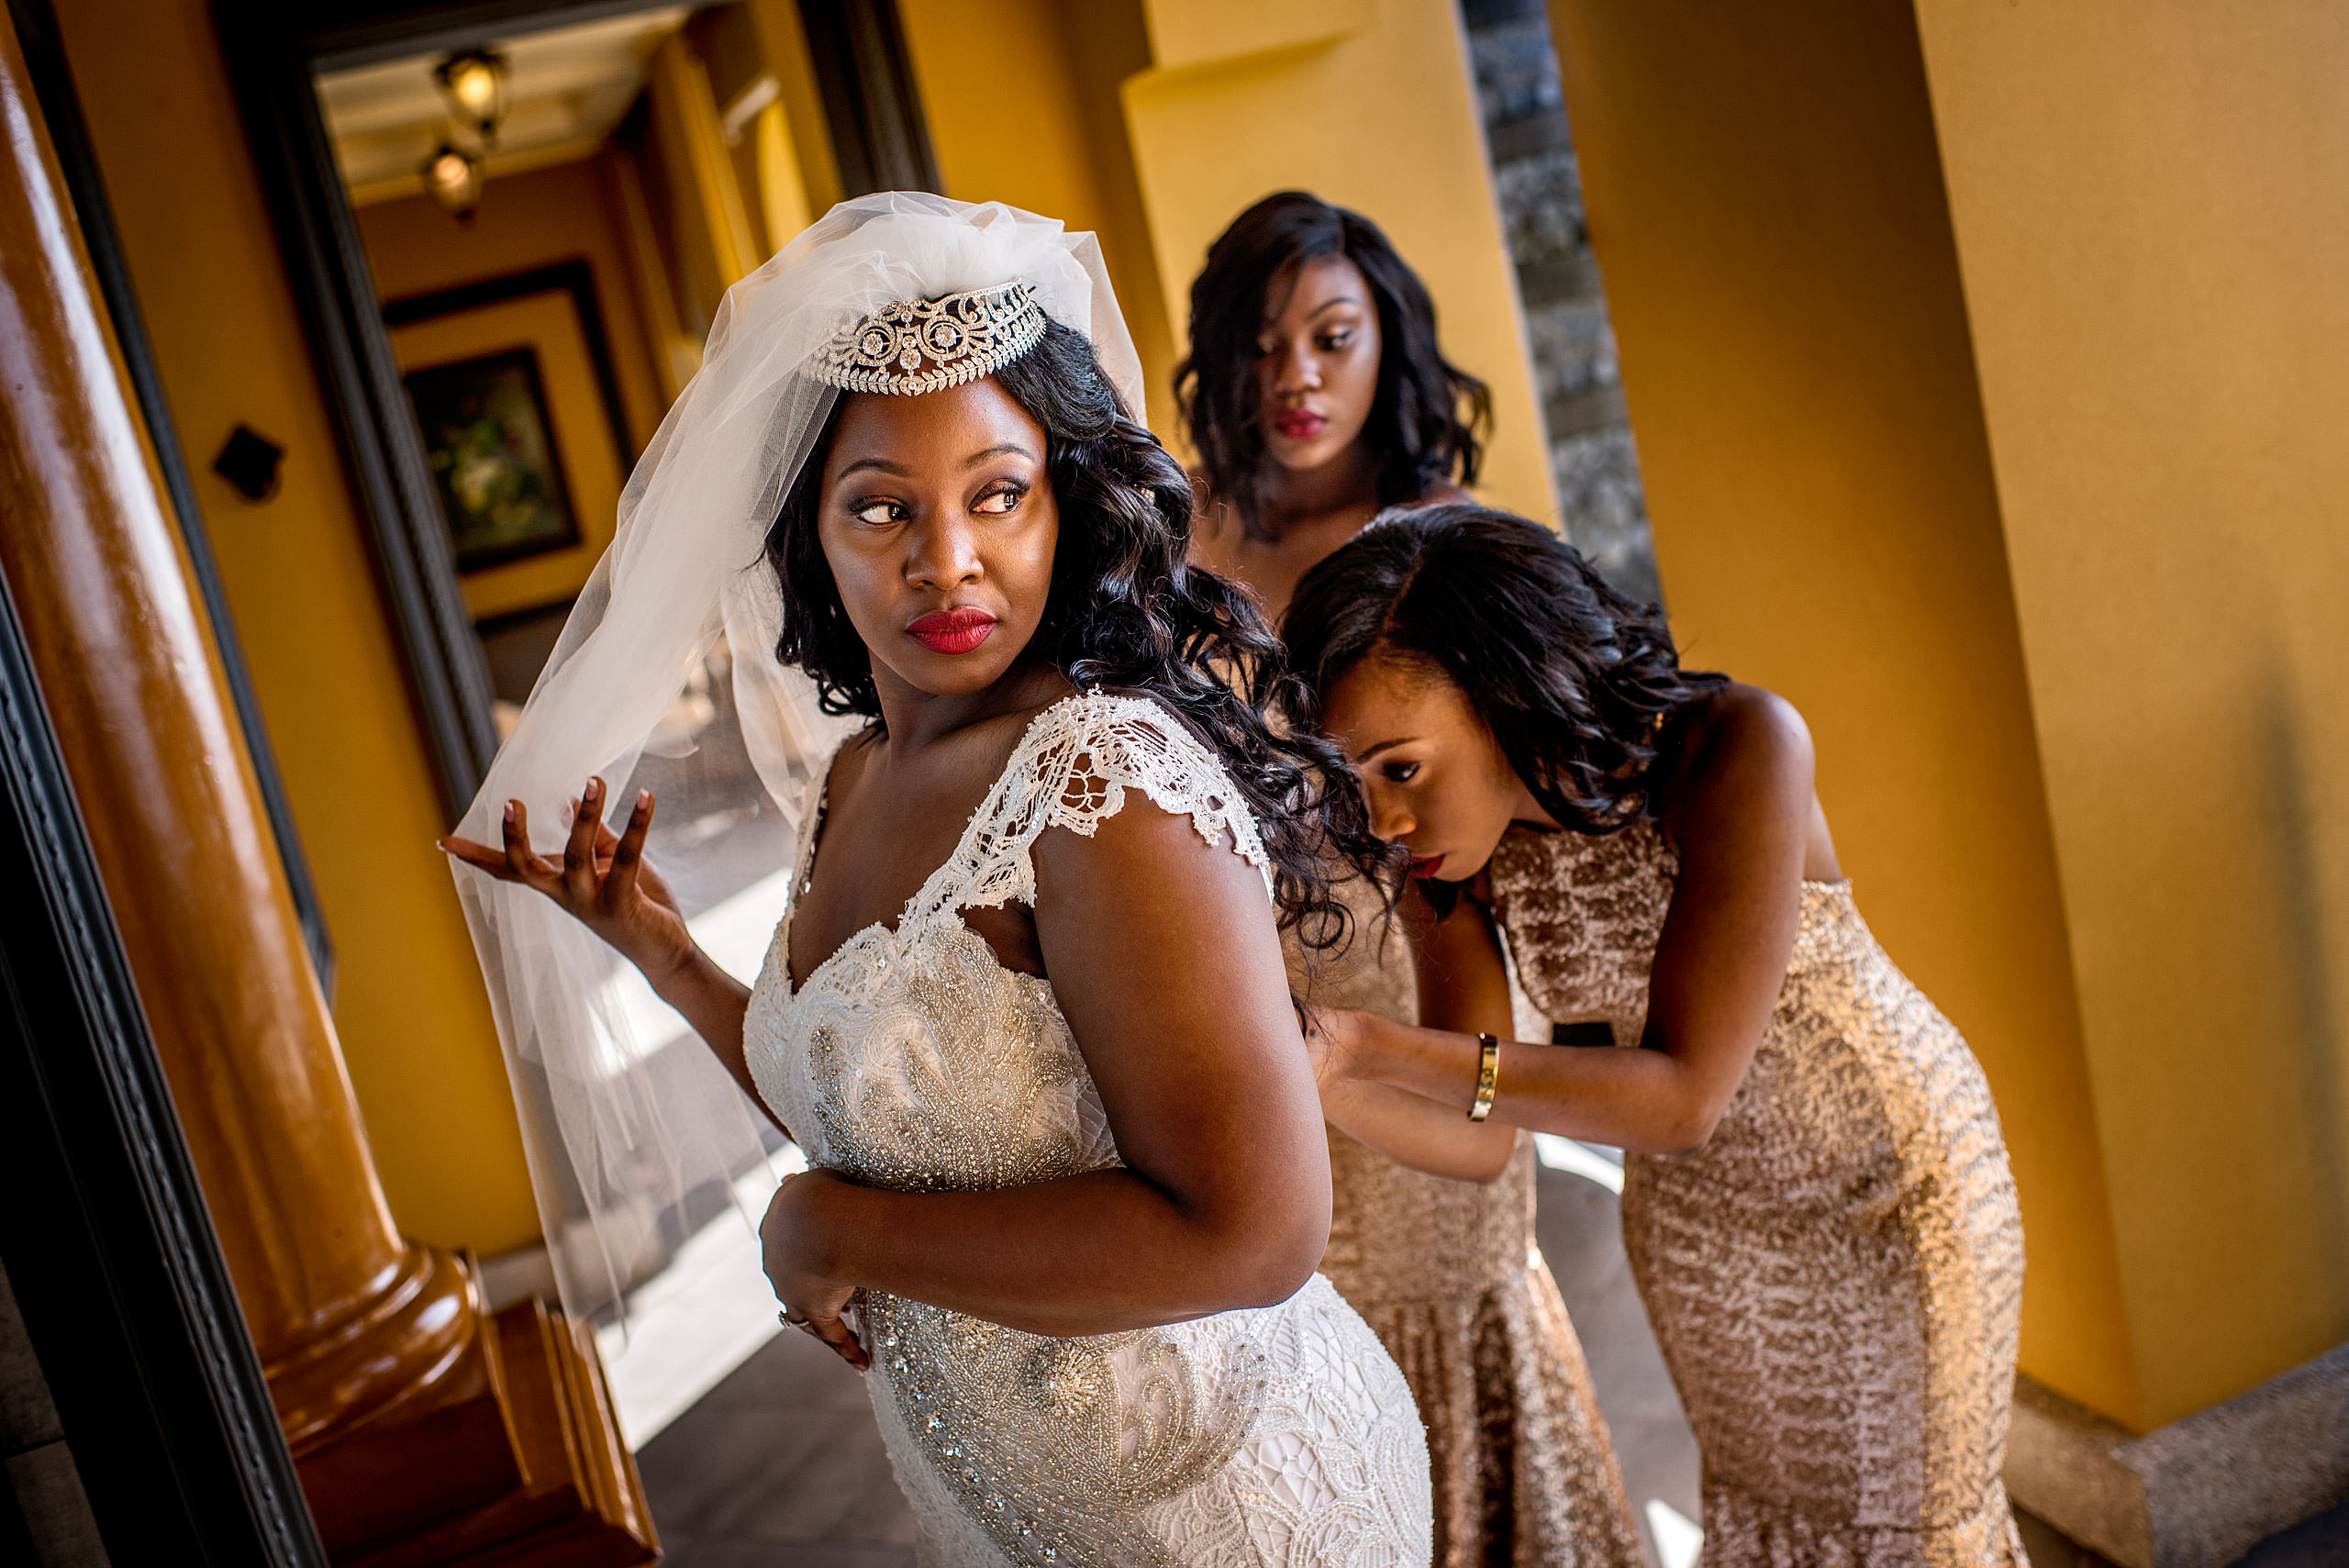 bridesmaids helping a bride get ready at Zephyr Palace Destination Wedding in Costa Rica by Sean LeBlanc